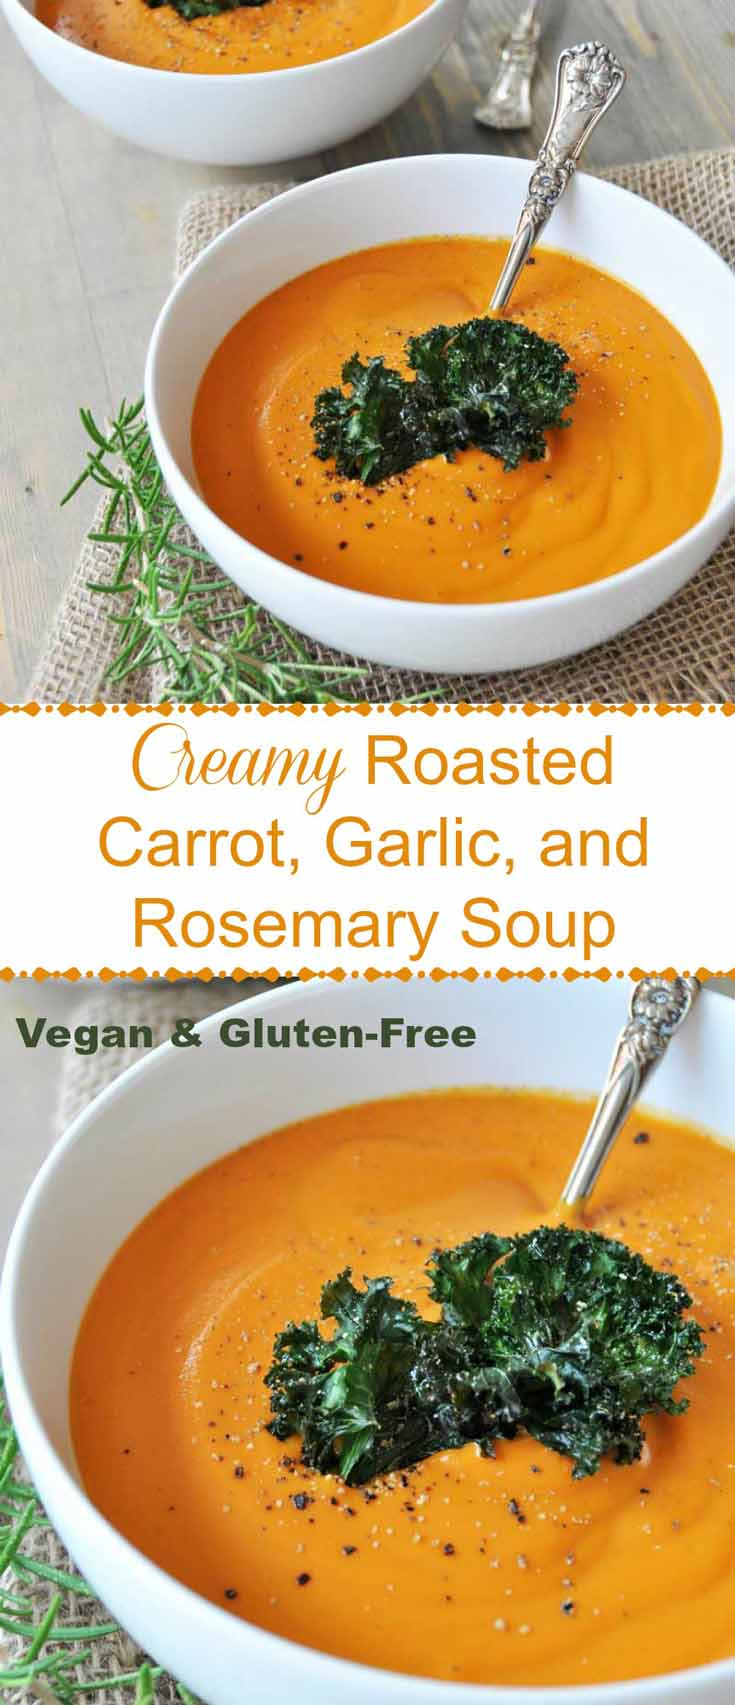 A Pinterest pin for creamy roasted carrot, garlic, and rosemary soup with two pictures of the soup in a white bowl.